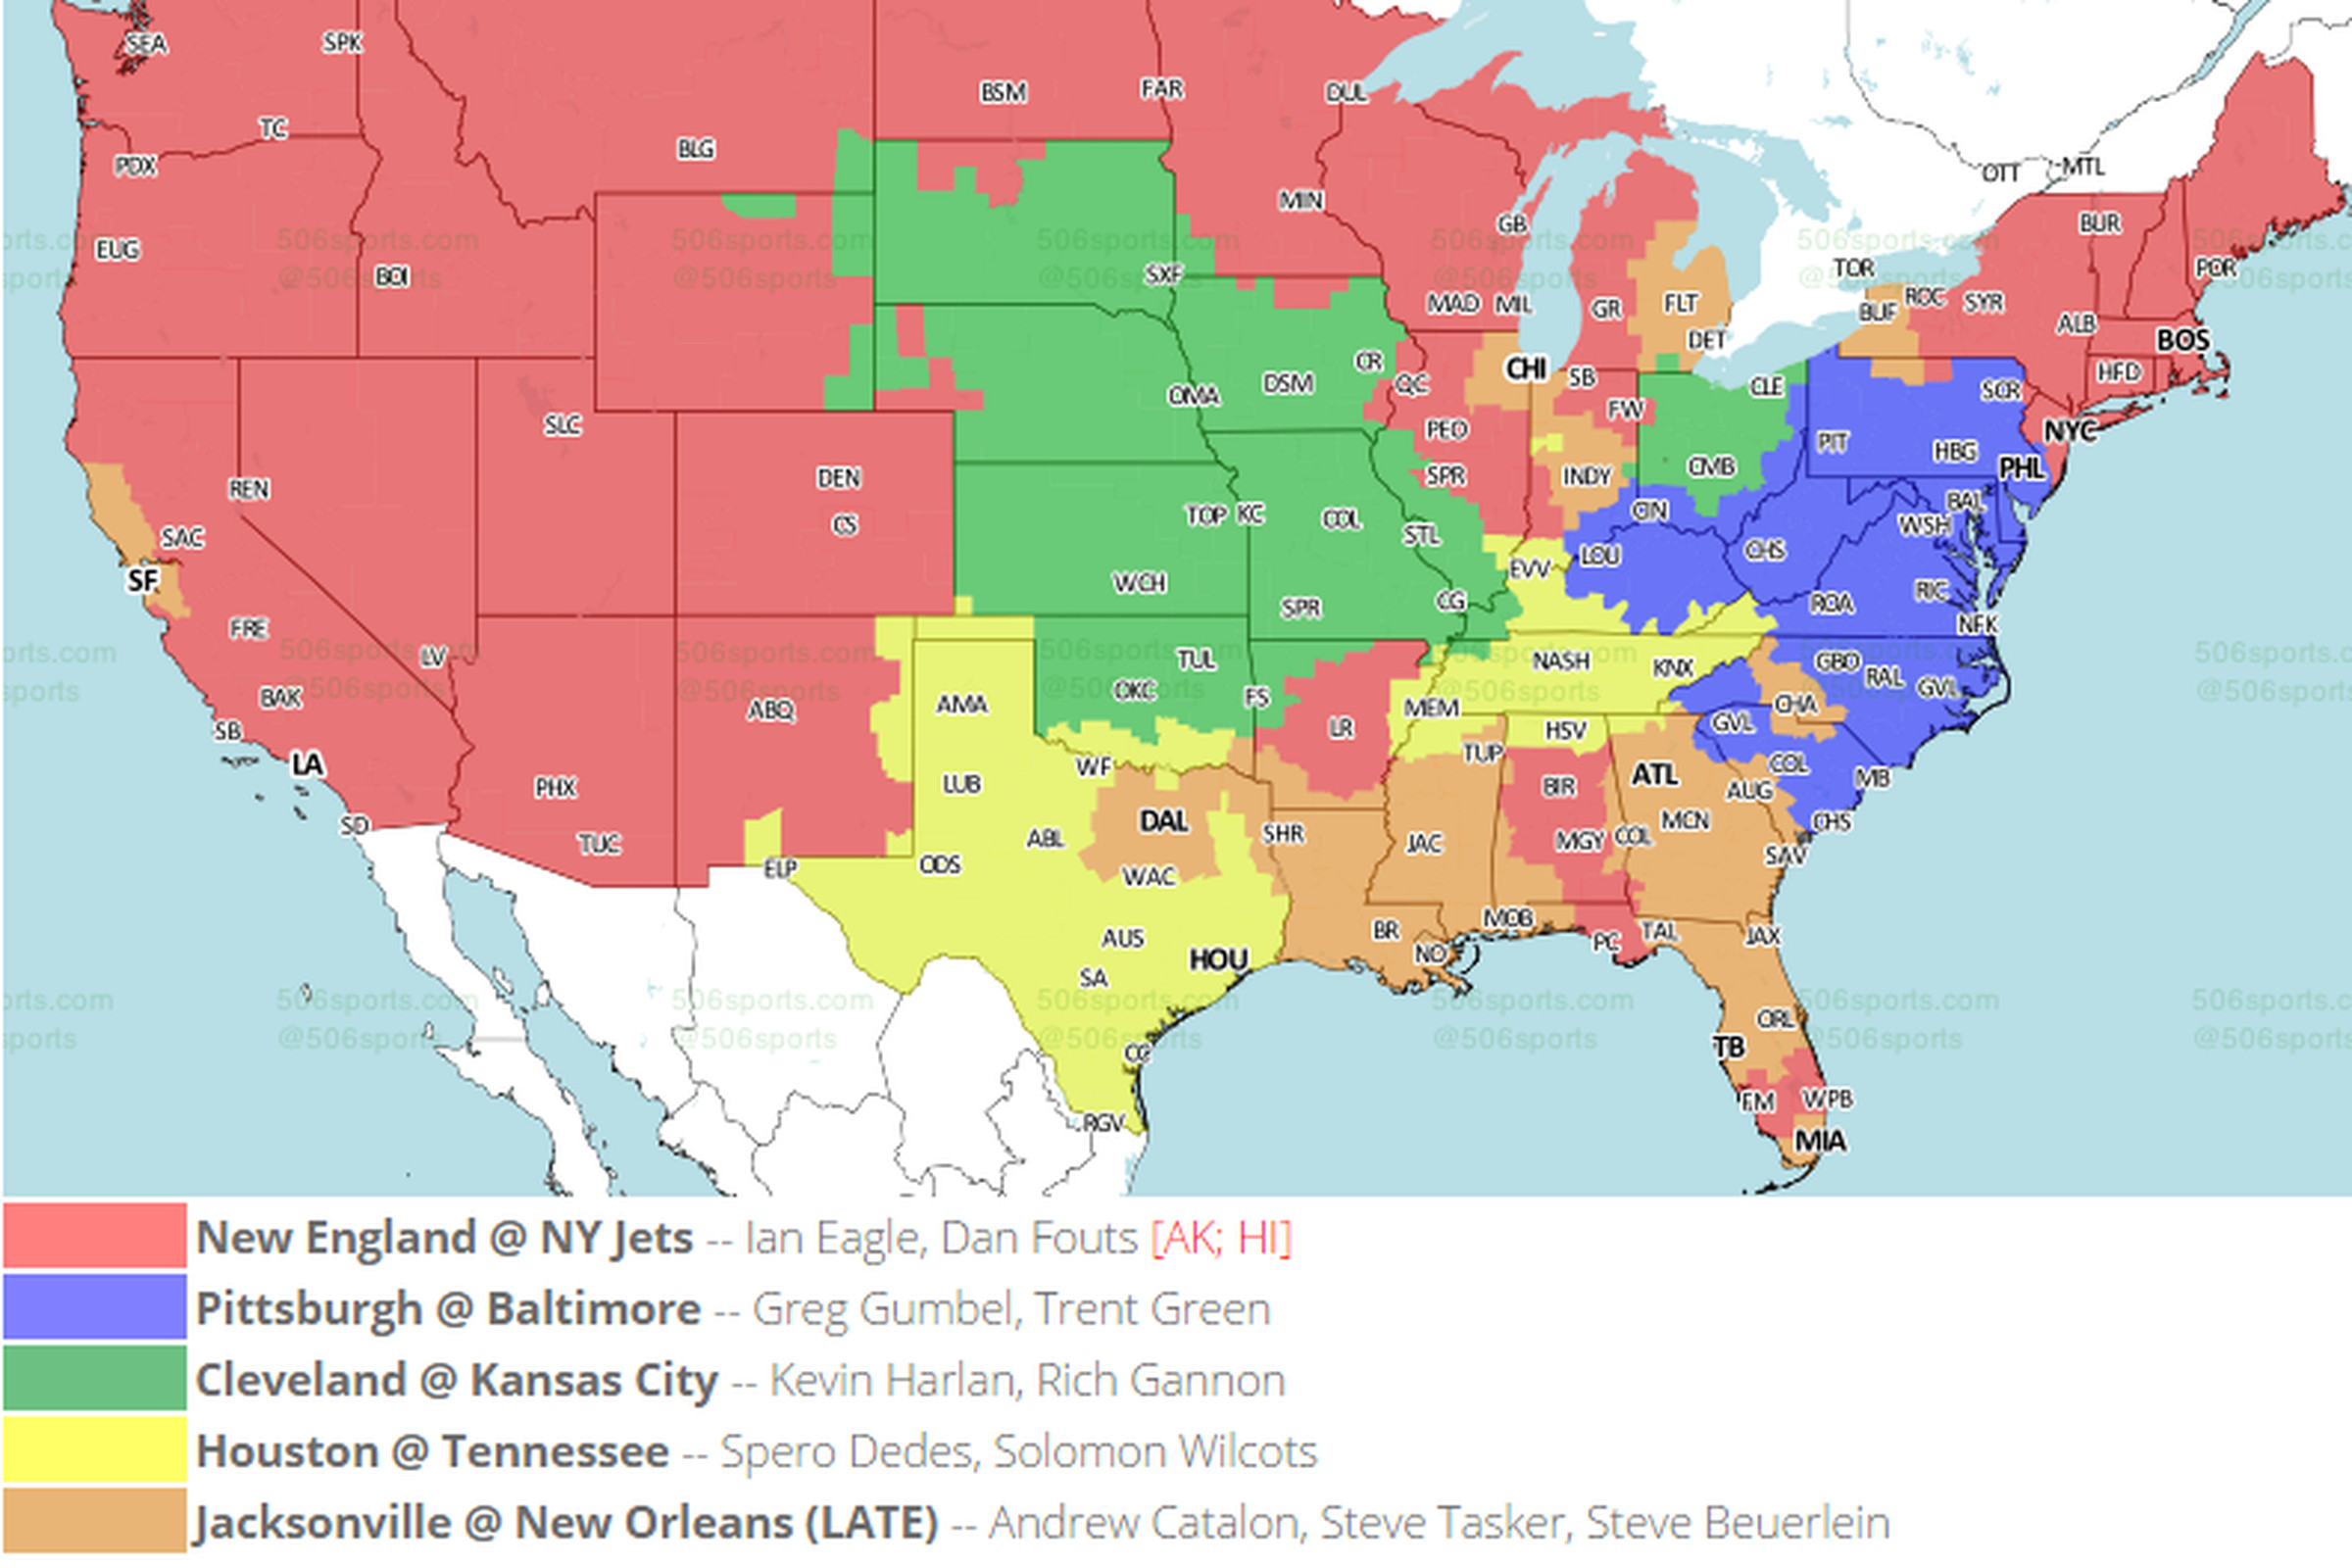 football games odds nfl tv maps